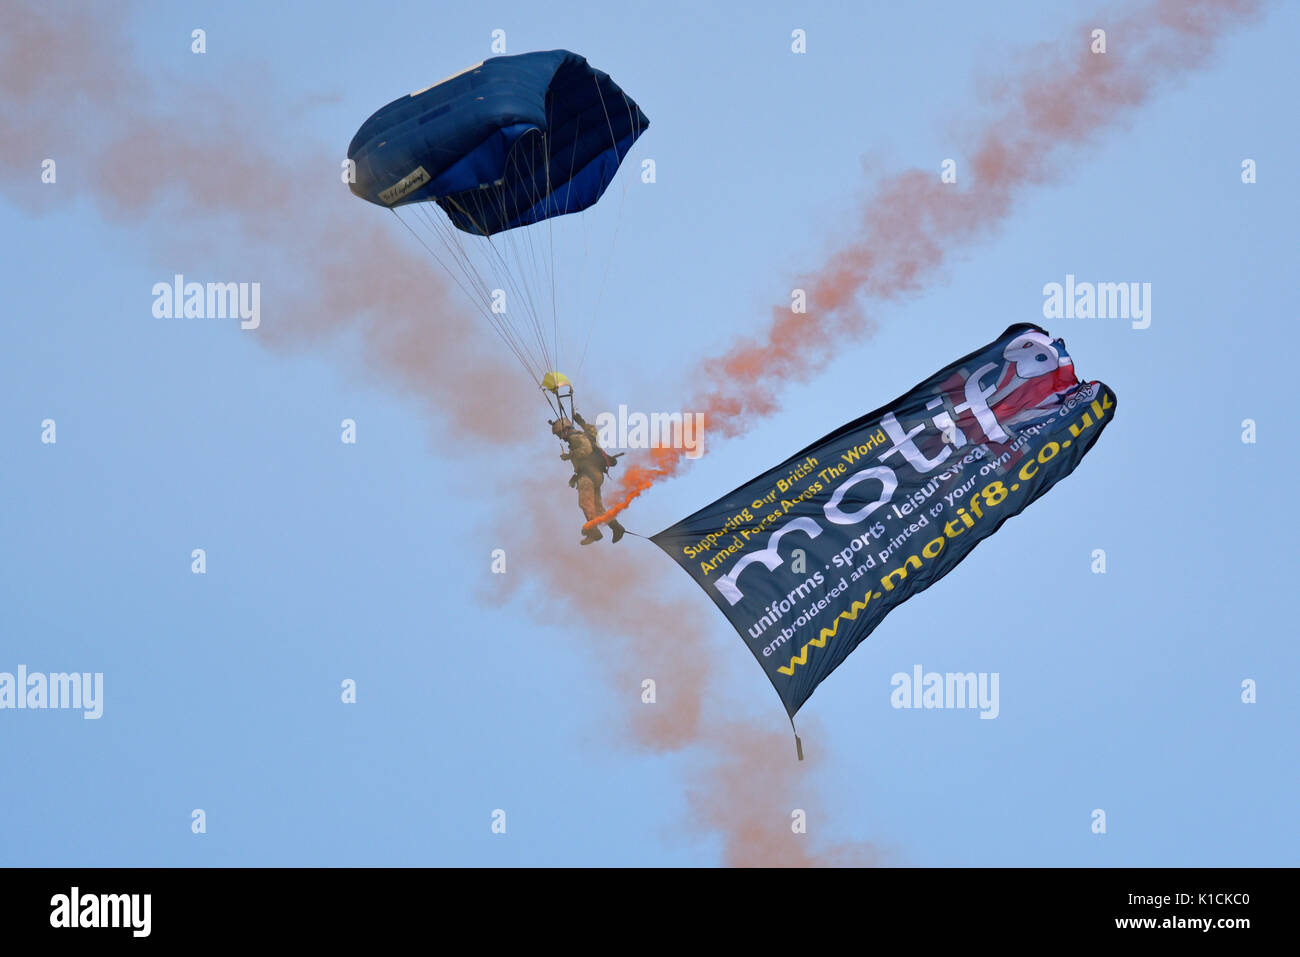 The Tigers The Princess of Wales's Royal Regiment's Parachute display team of the British Army parachuting during the Clacton airshow. Motif8 flag - Stock Image